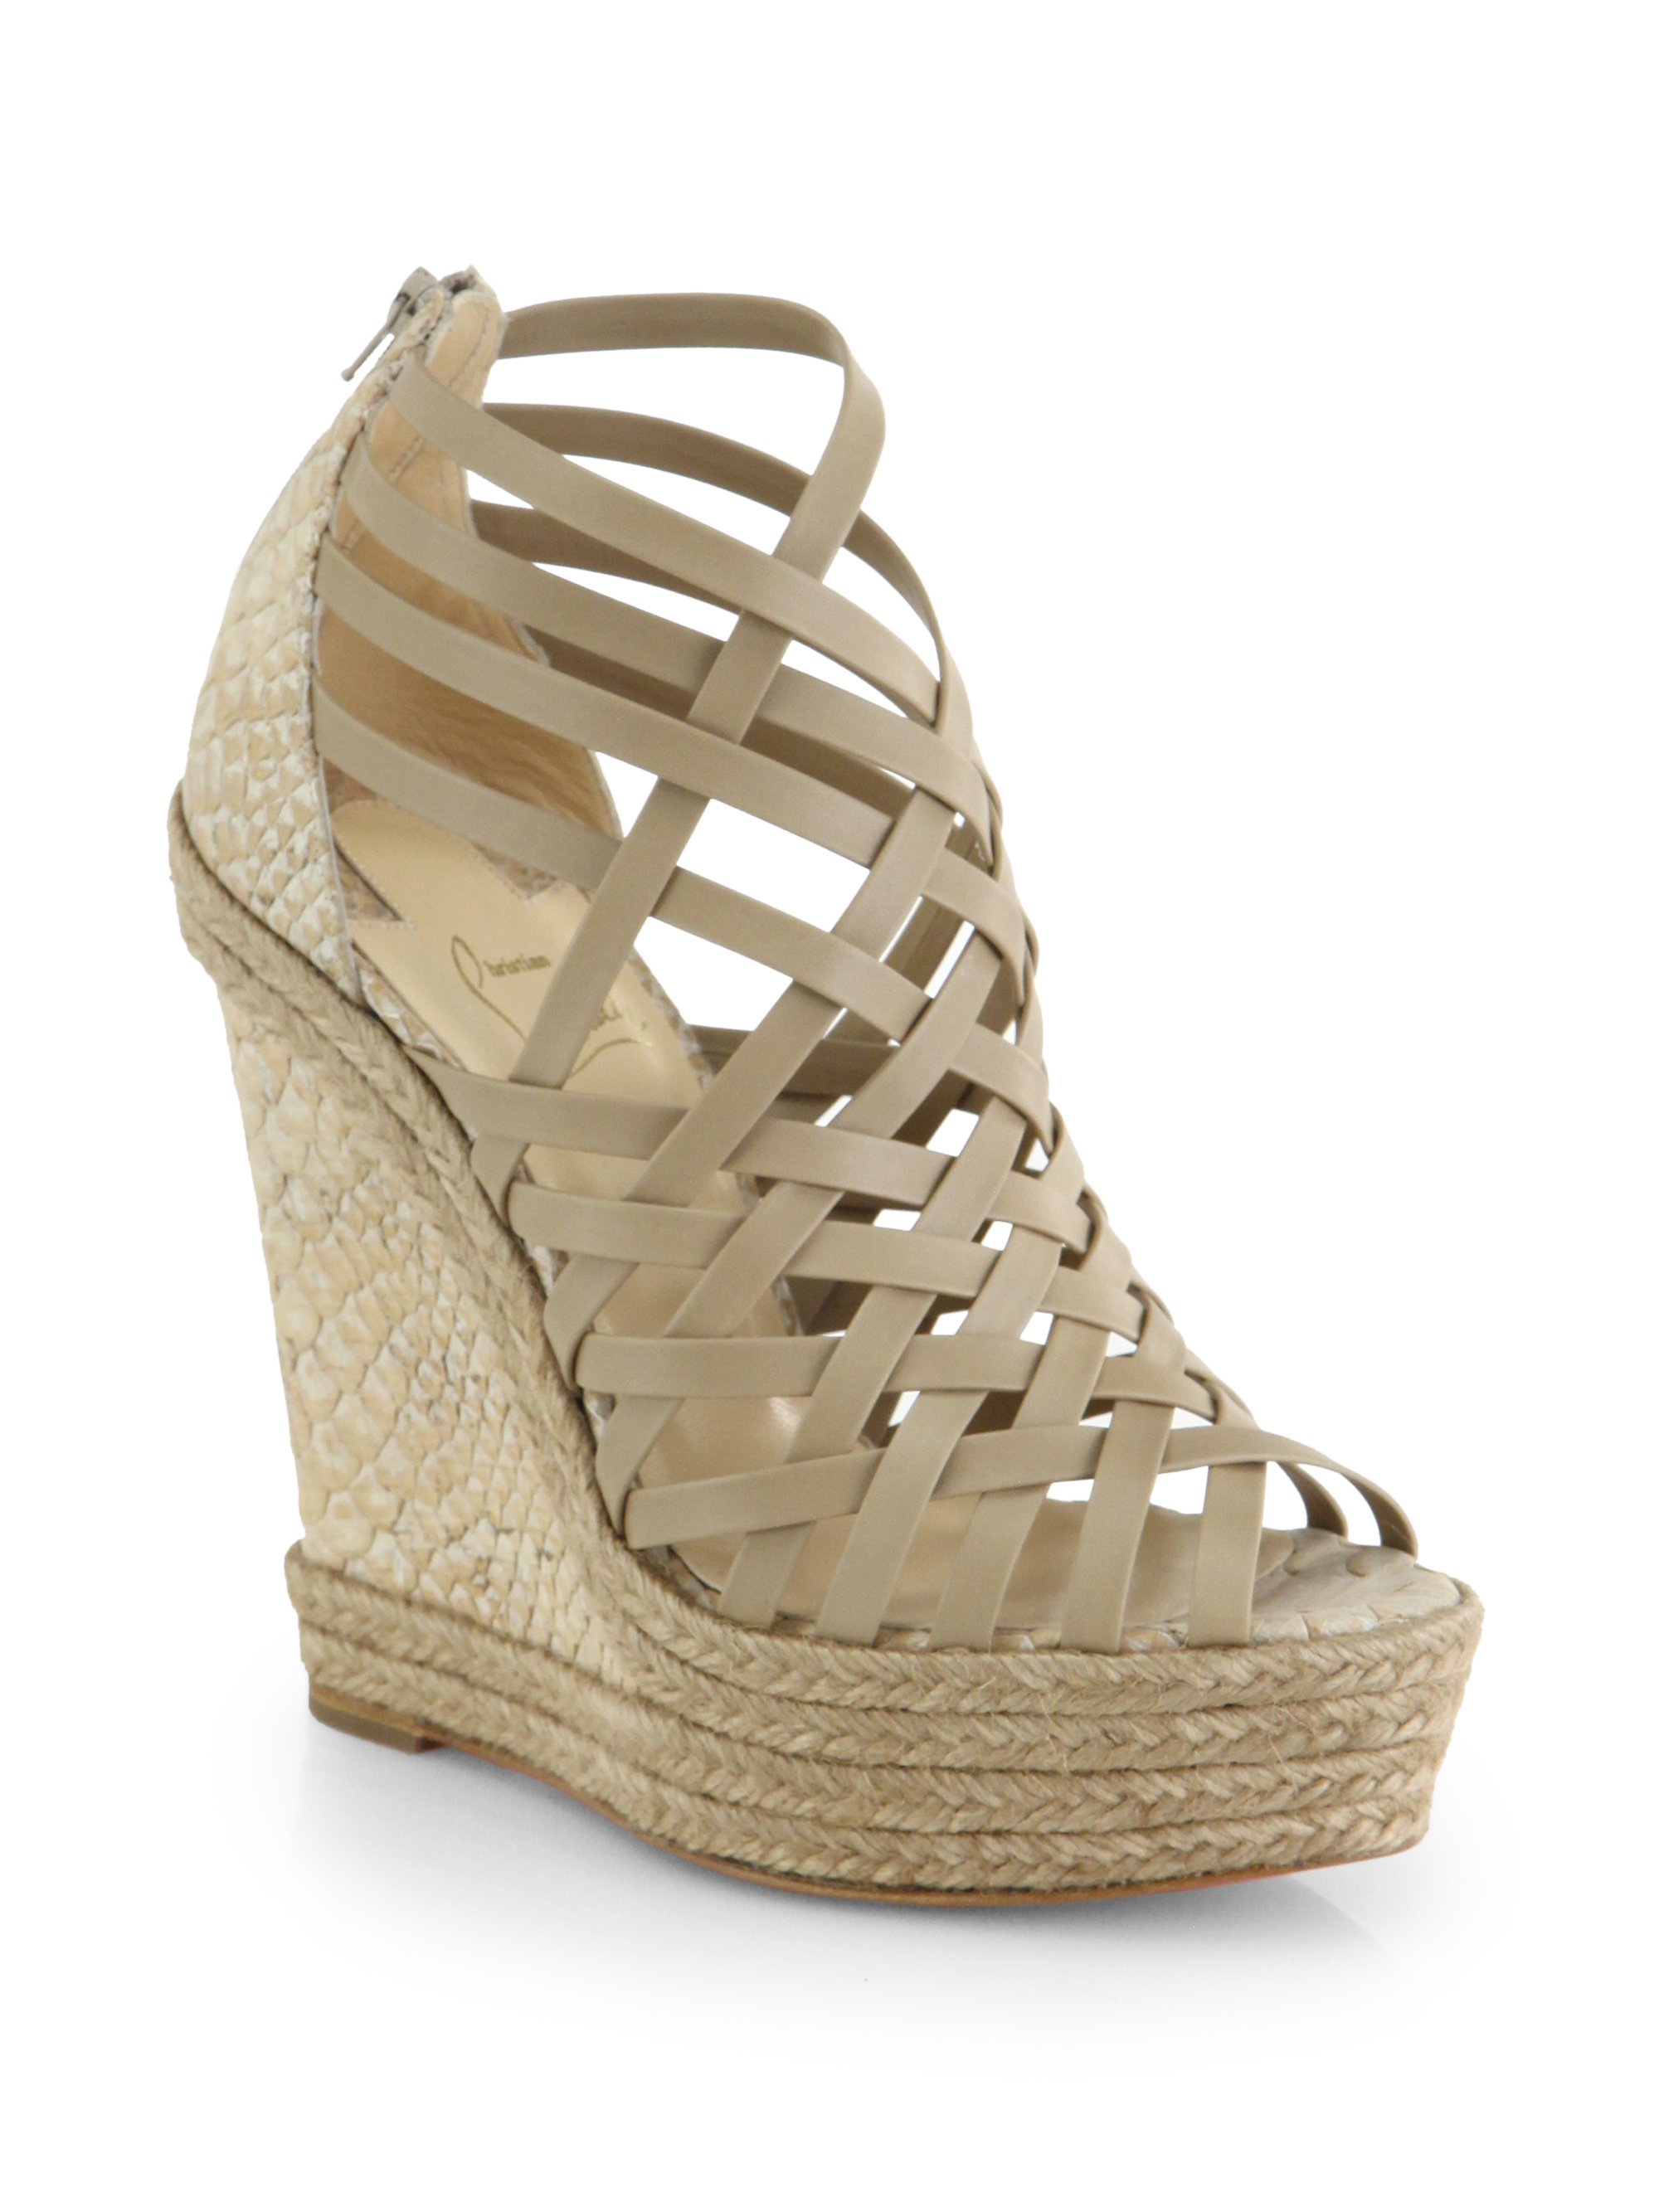 fake men christian louboutin - christian louboutin cork wedge sandals | The Little Arts Academy